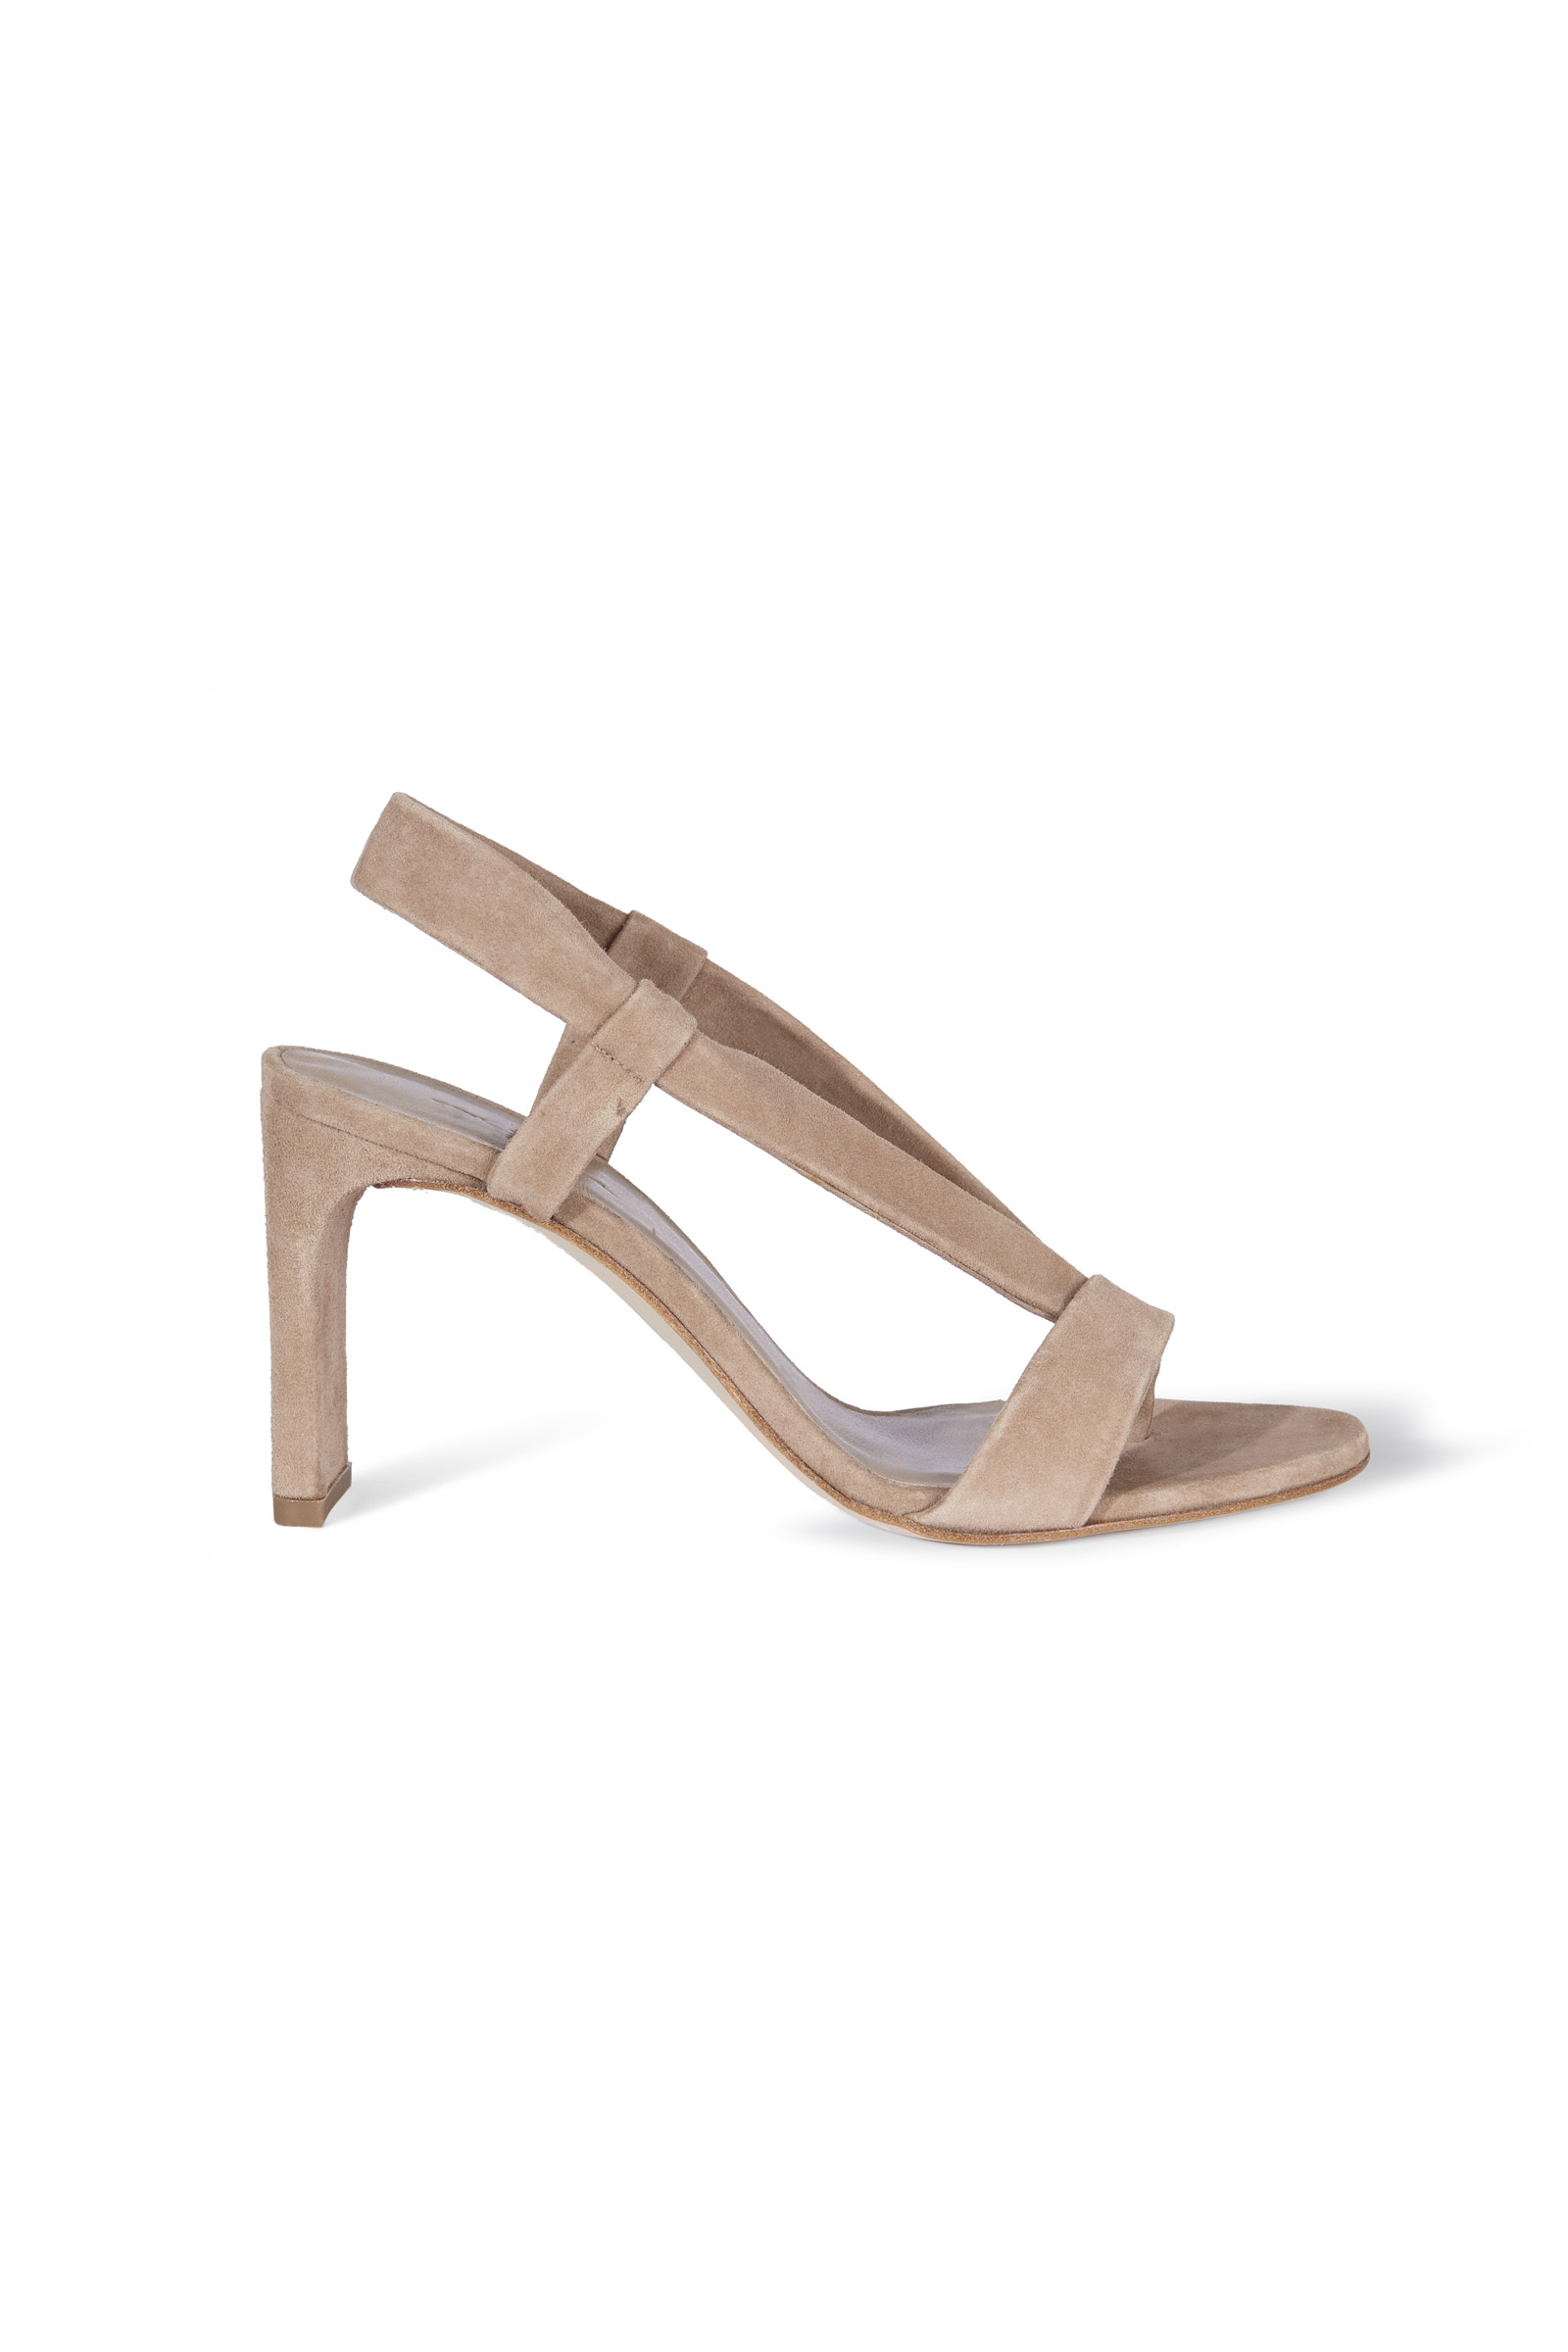 DIANA, SUEDE HIGH-HEELED SANDALS - Cortana Moda